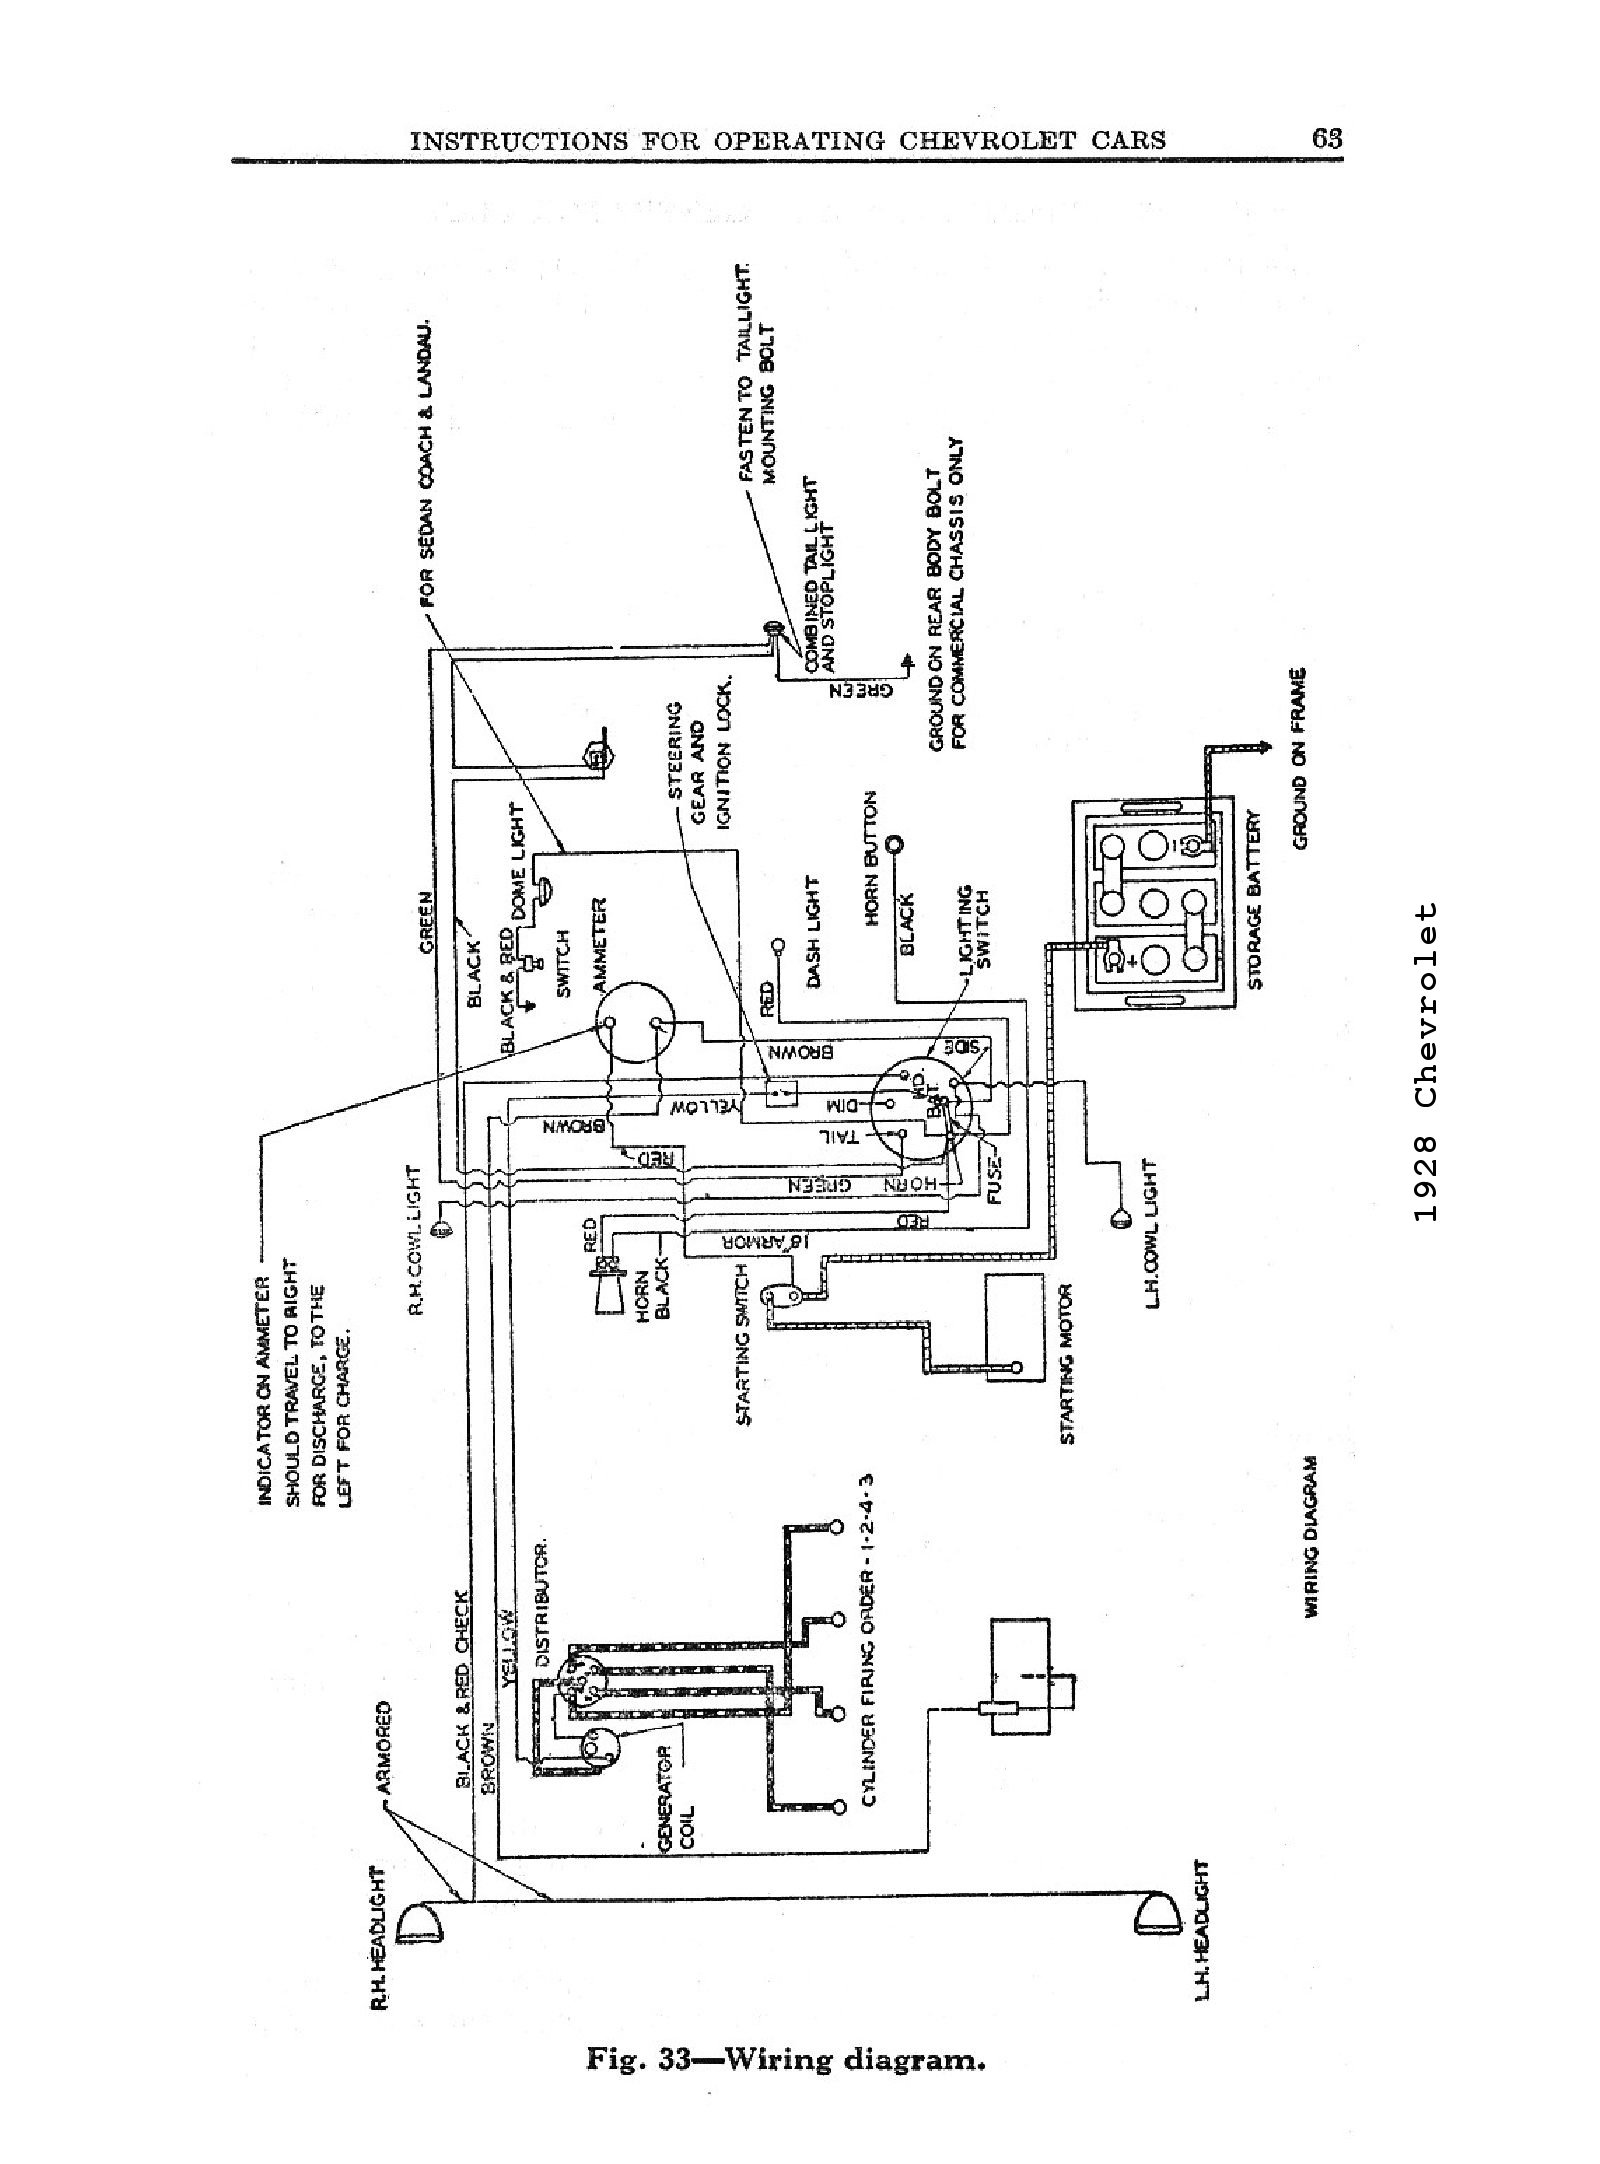 hight resolution of 1958 chevrolet steering column wiring wiring diagram row 1958 chevrolet steering column wiring